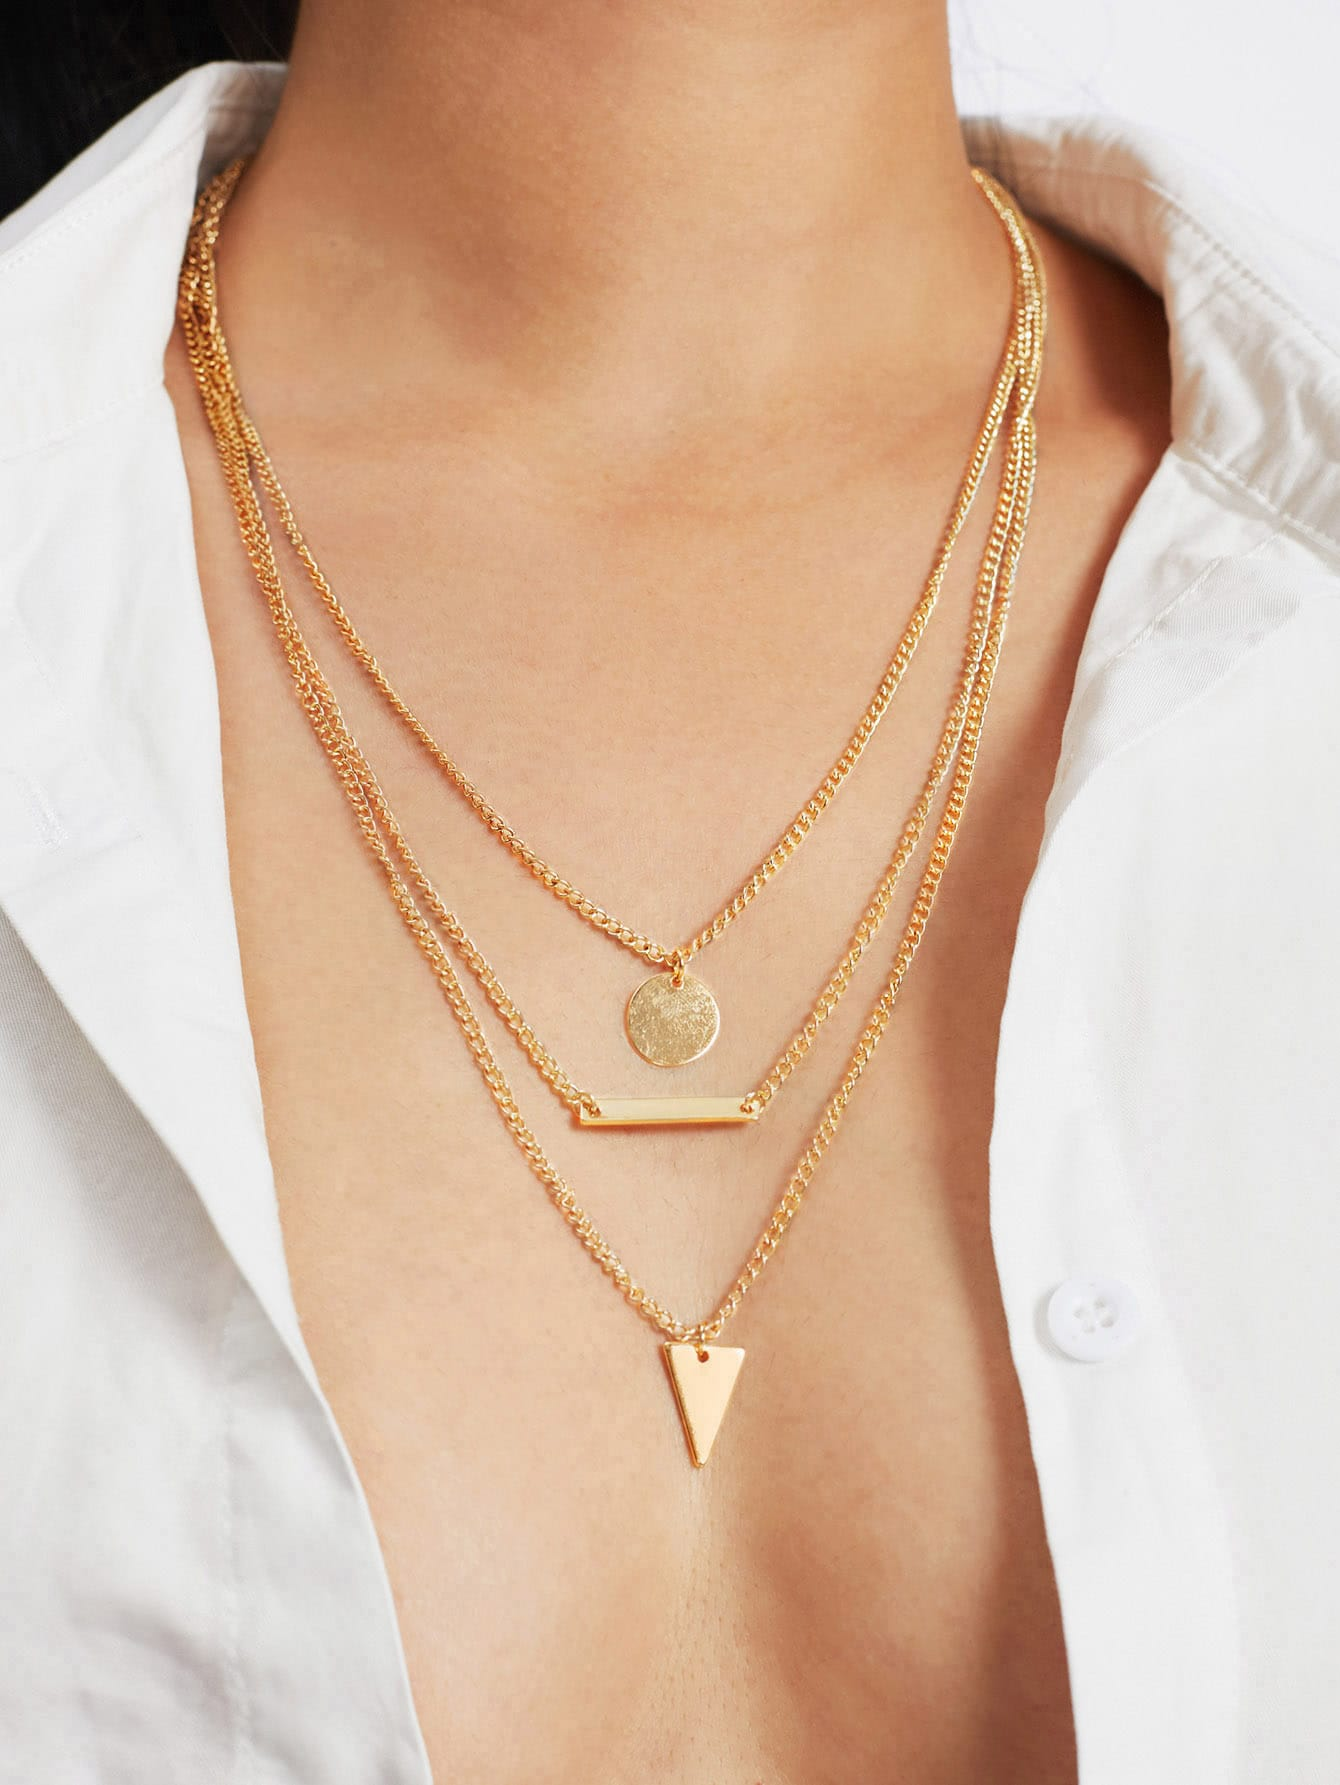 Geometric Pendant Layered Chain Necklace 2015 vip1 3